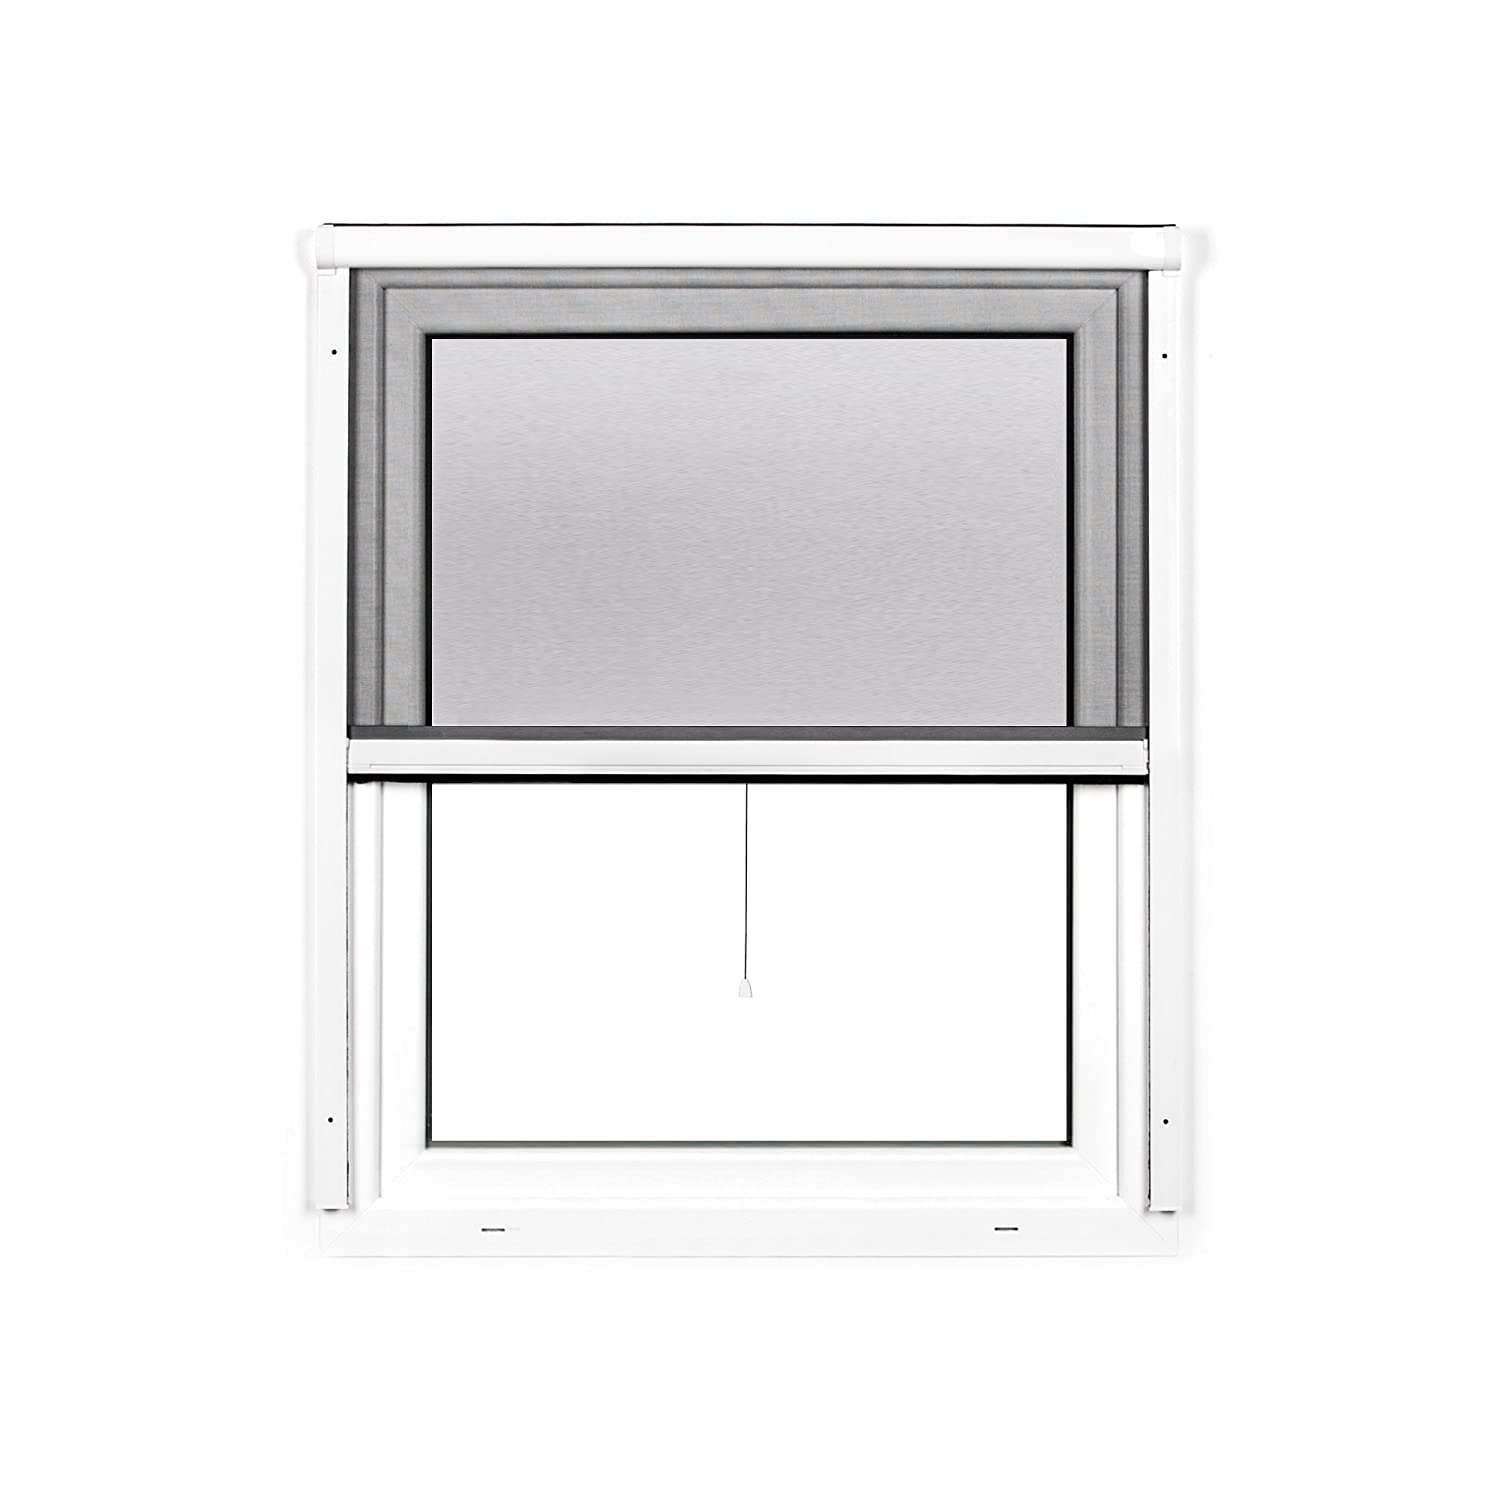 JAROLIFT 2 in 1 Volaris Roller Fly Screen for Windows - Retractable Insect Screen - PVC Frame 100 x 140 cm (W x H), White